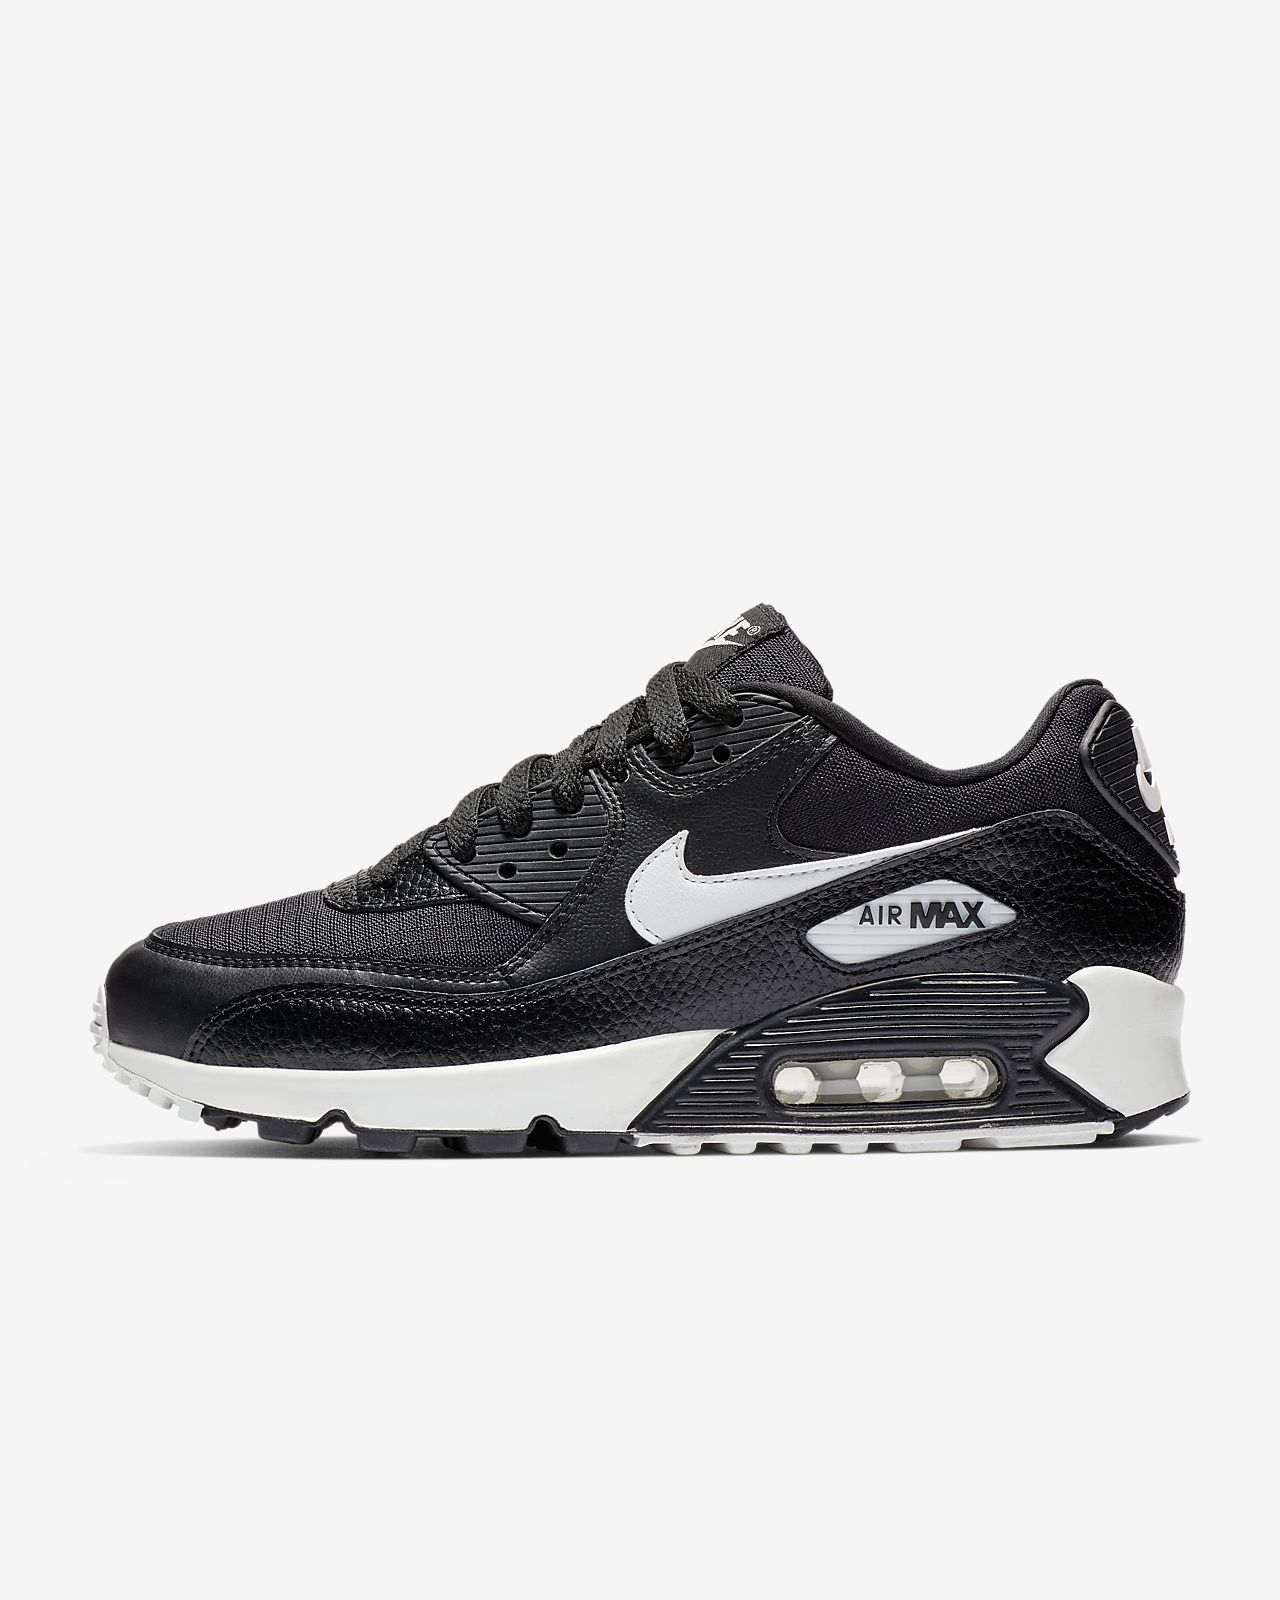 new style 1aa4a b9a9e ... Nike Air Max 90 Women s Shoe